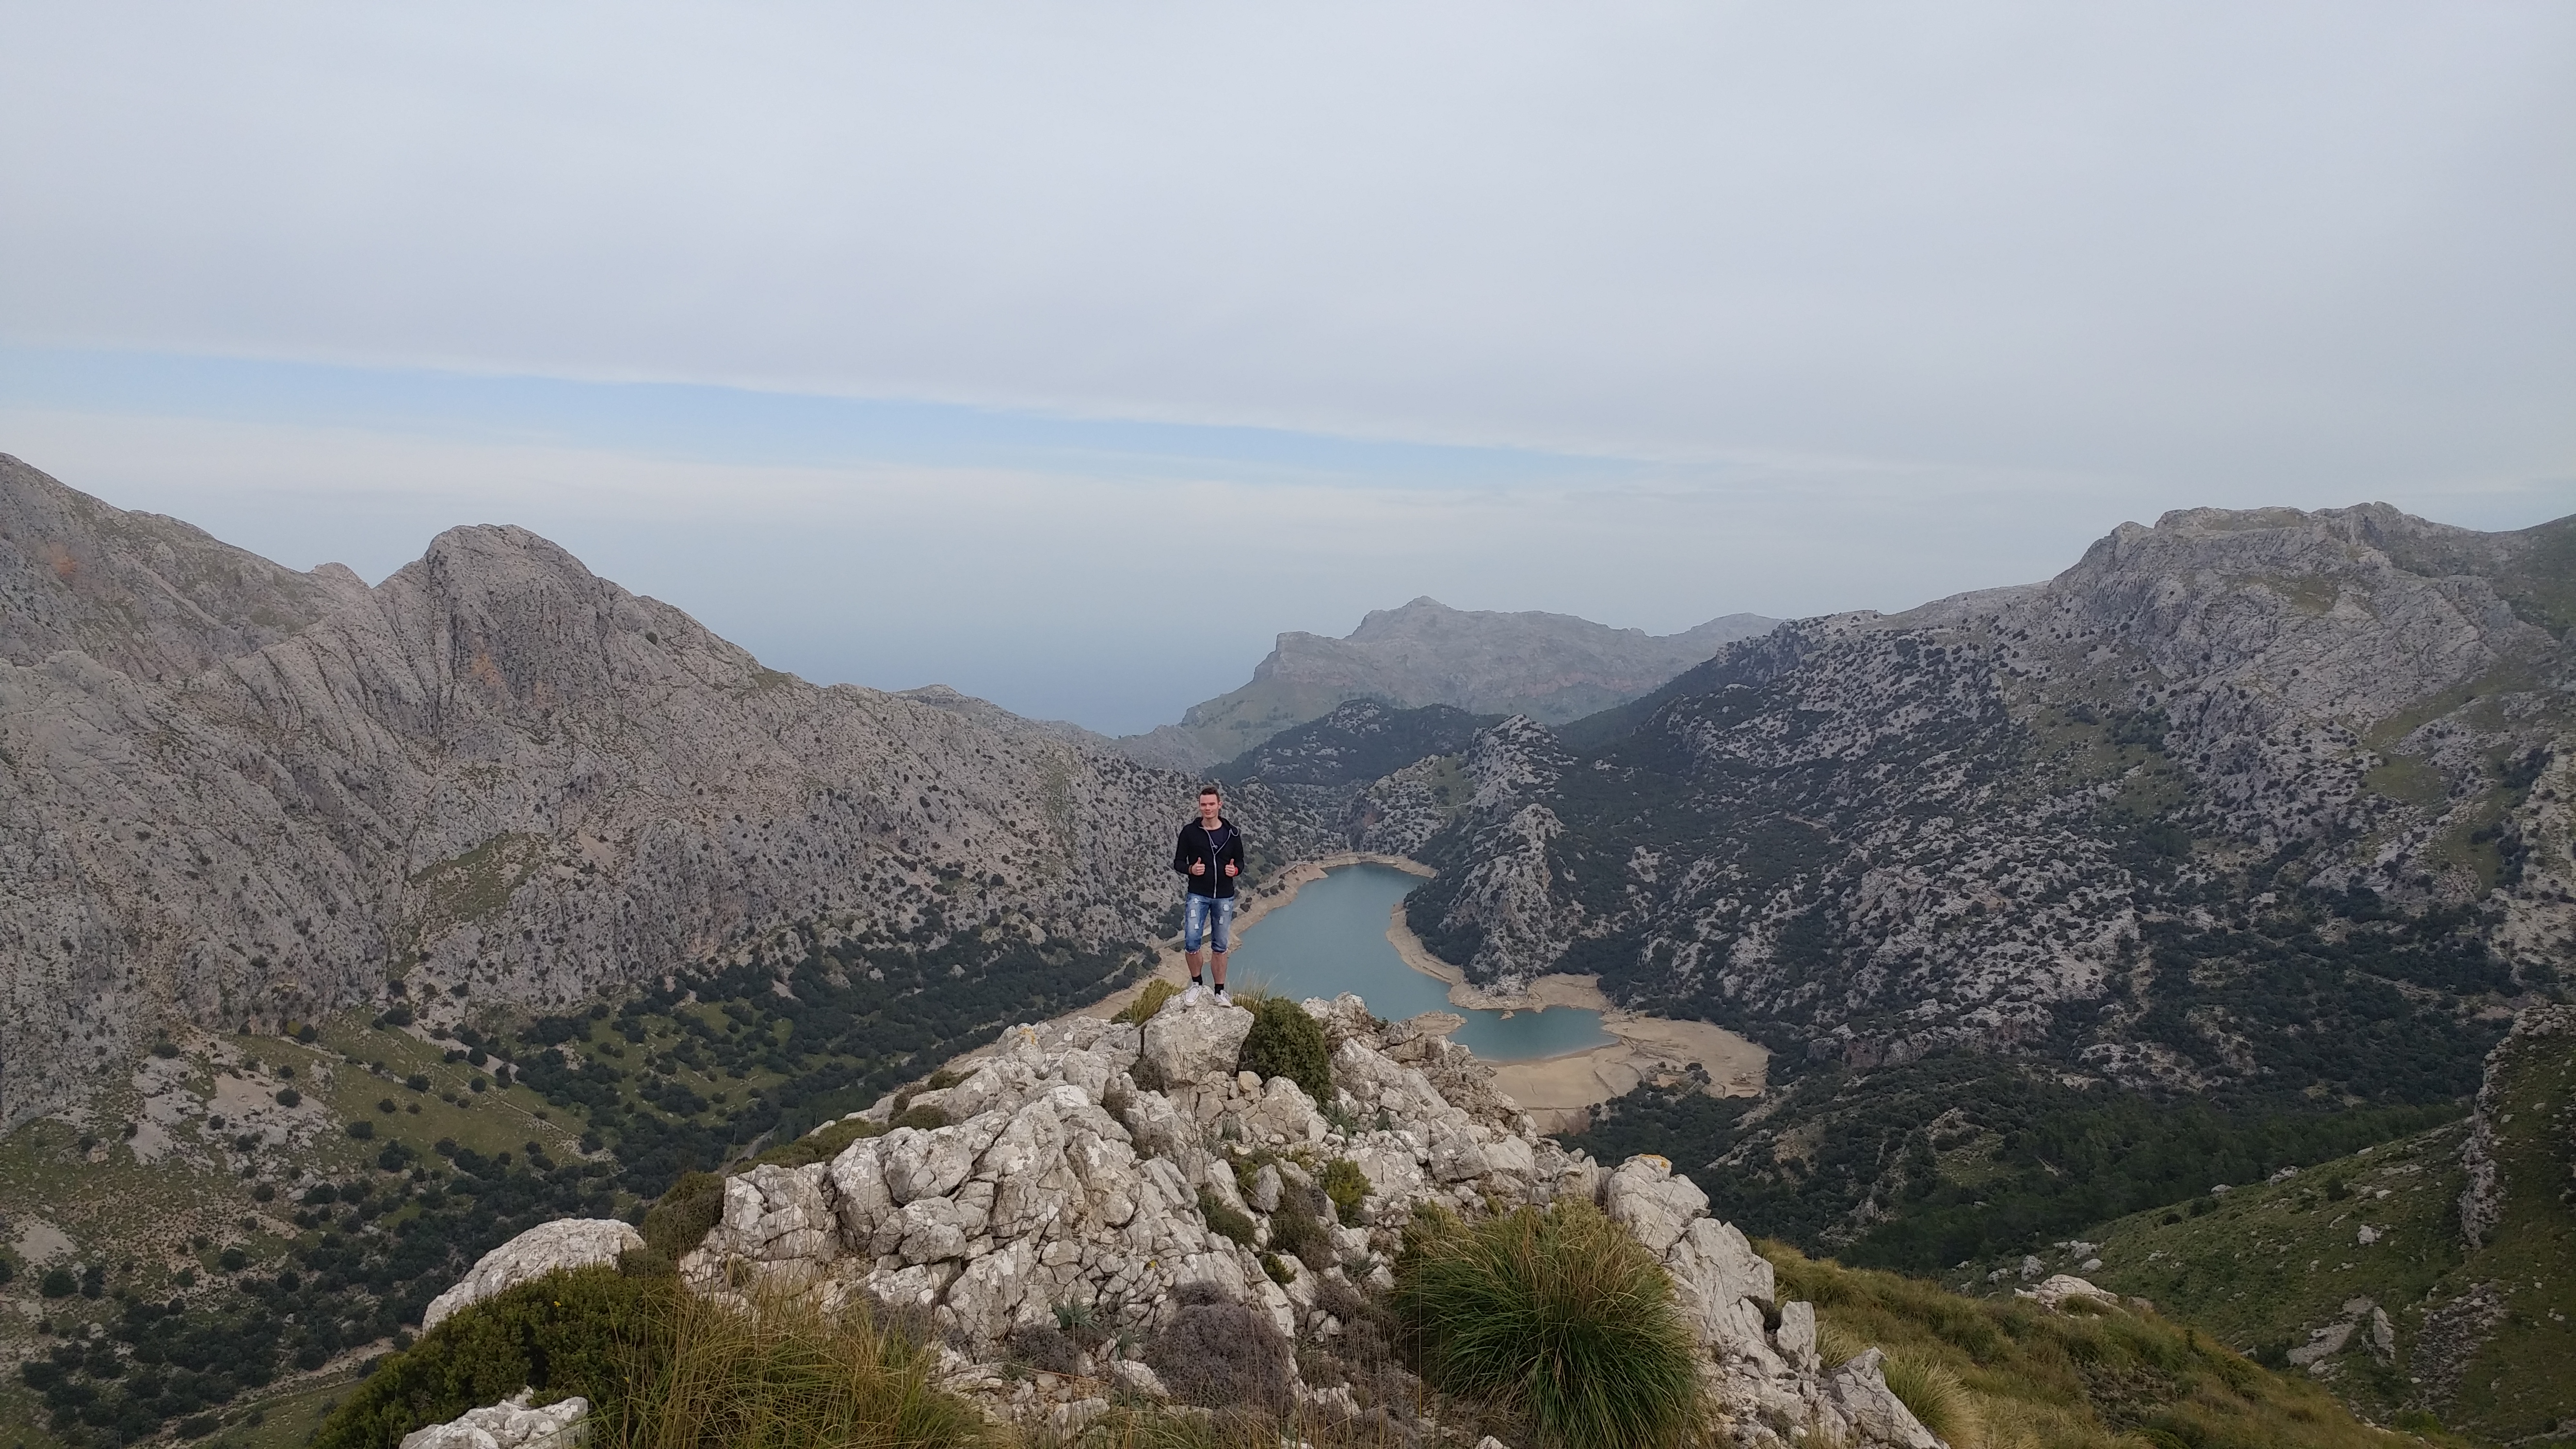 Standing tall upon Puig dels Tossals Verds in Mallorca